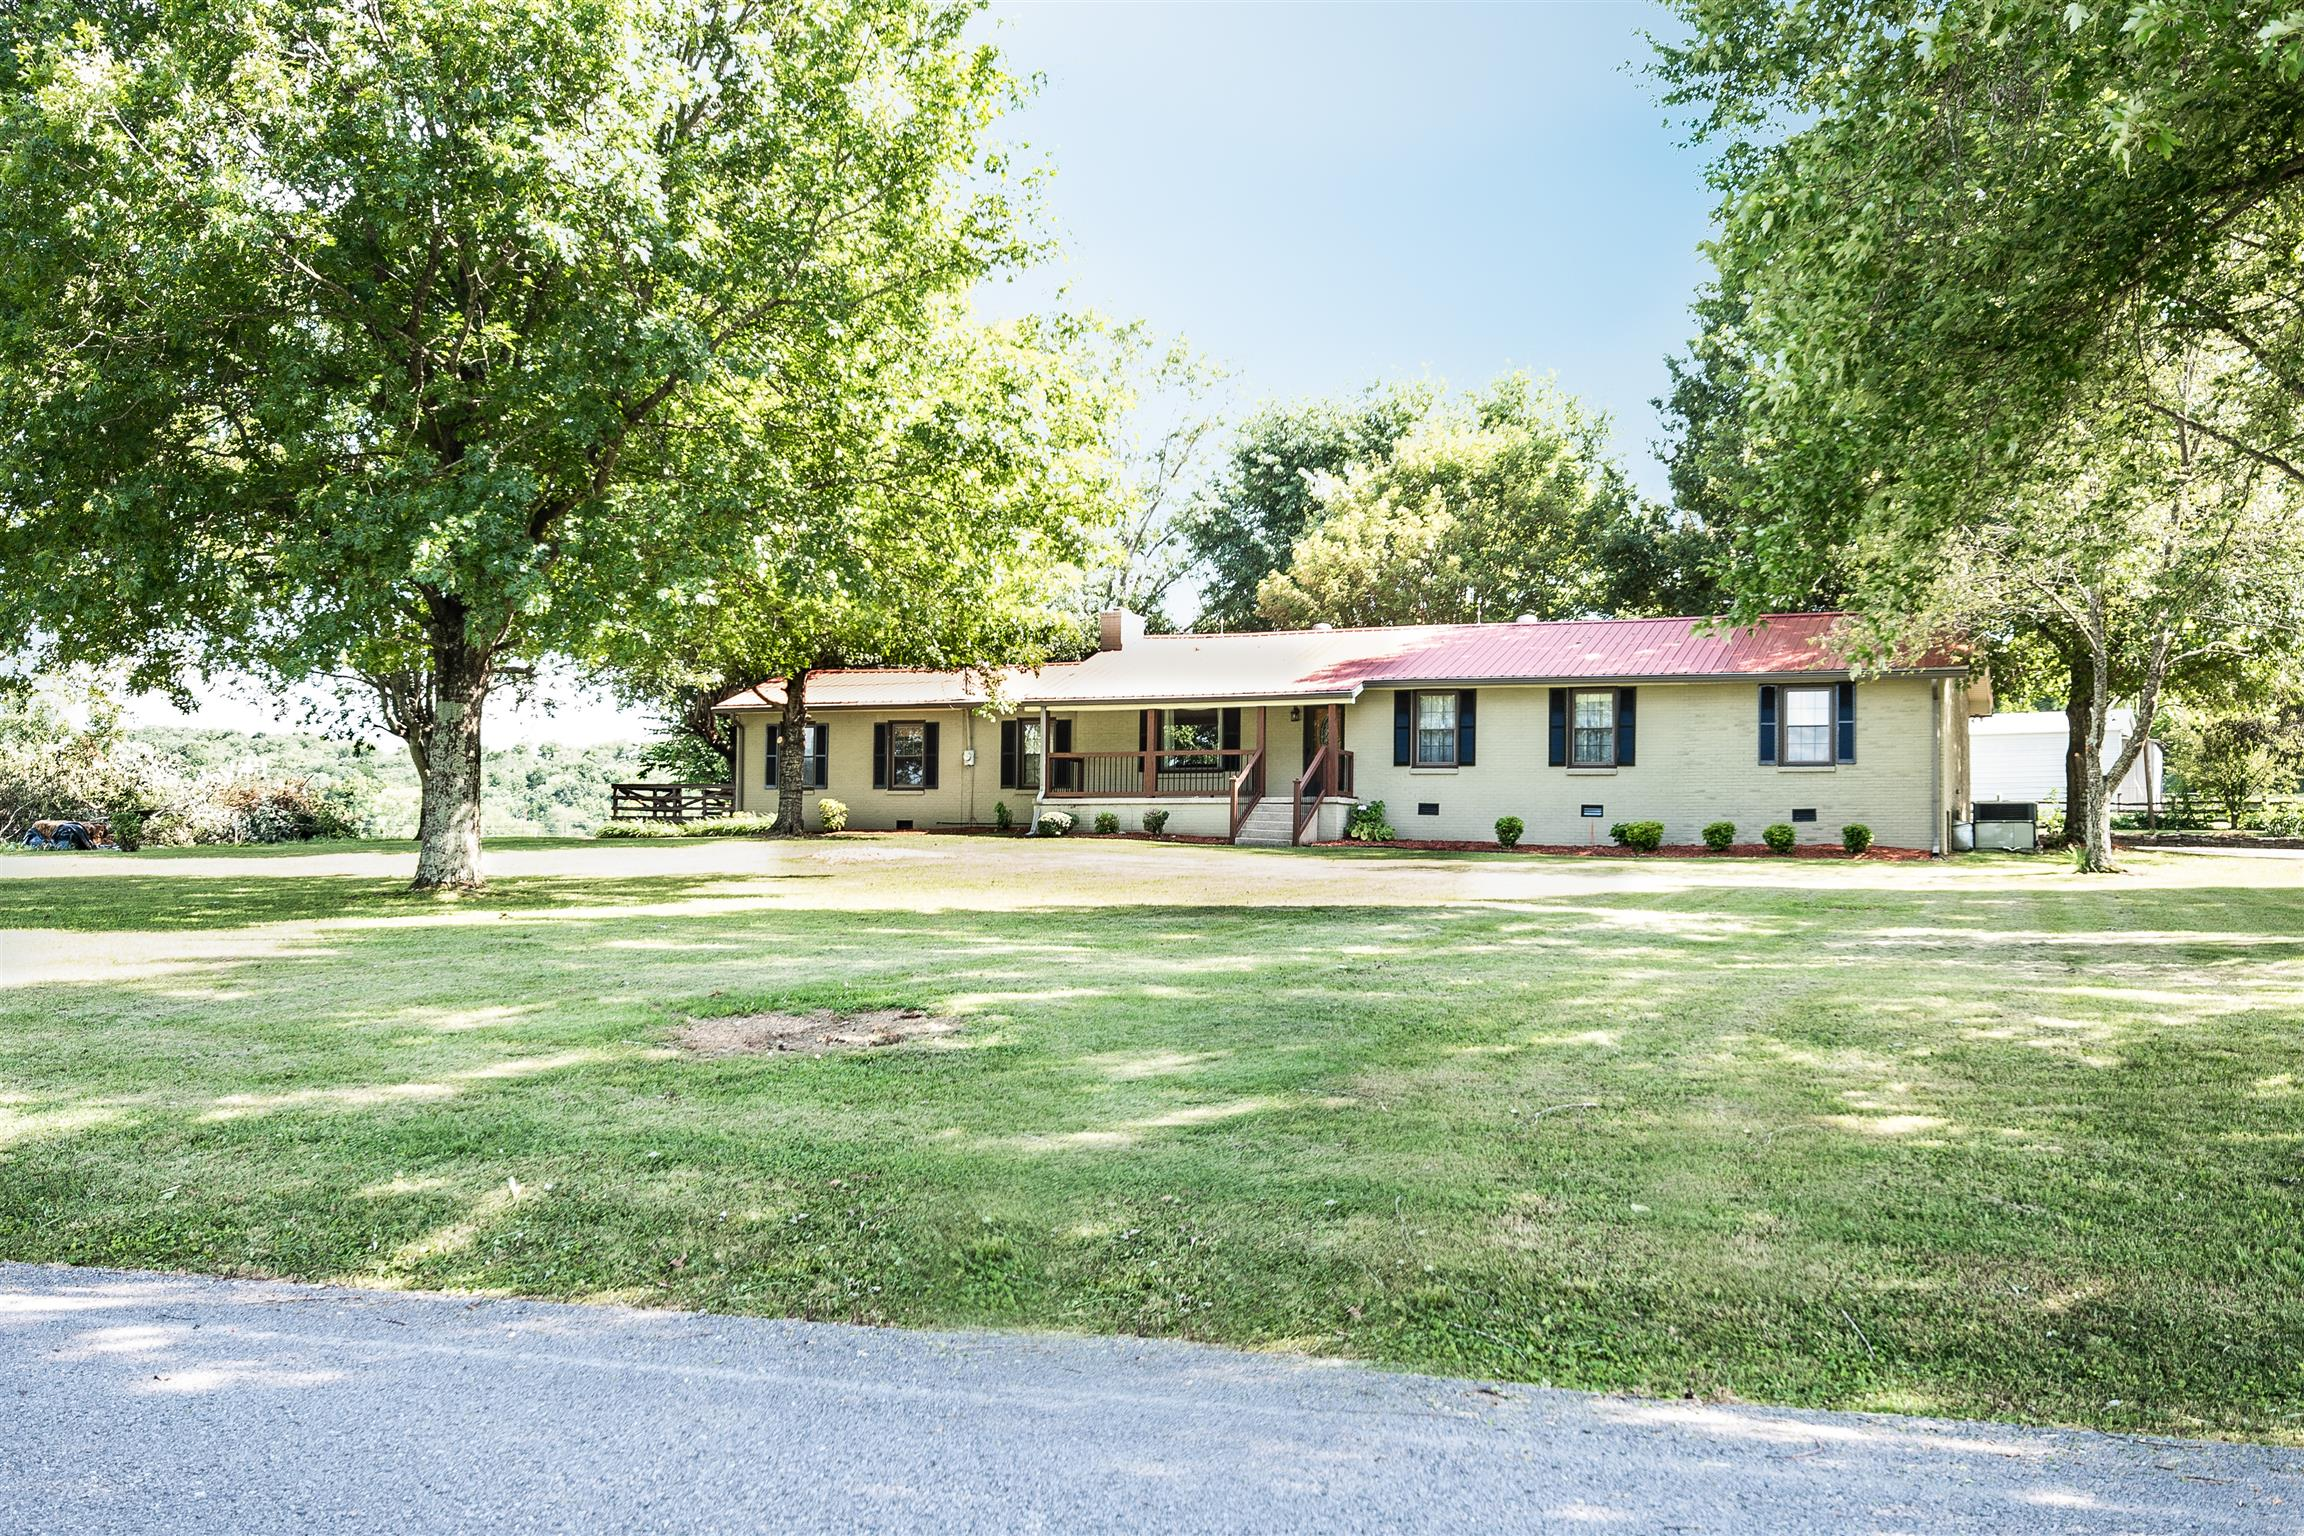 1280 Grant Rd, Watertown, TN 37184 - Watertown, TN real estate listing